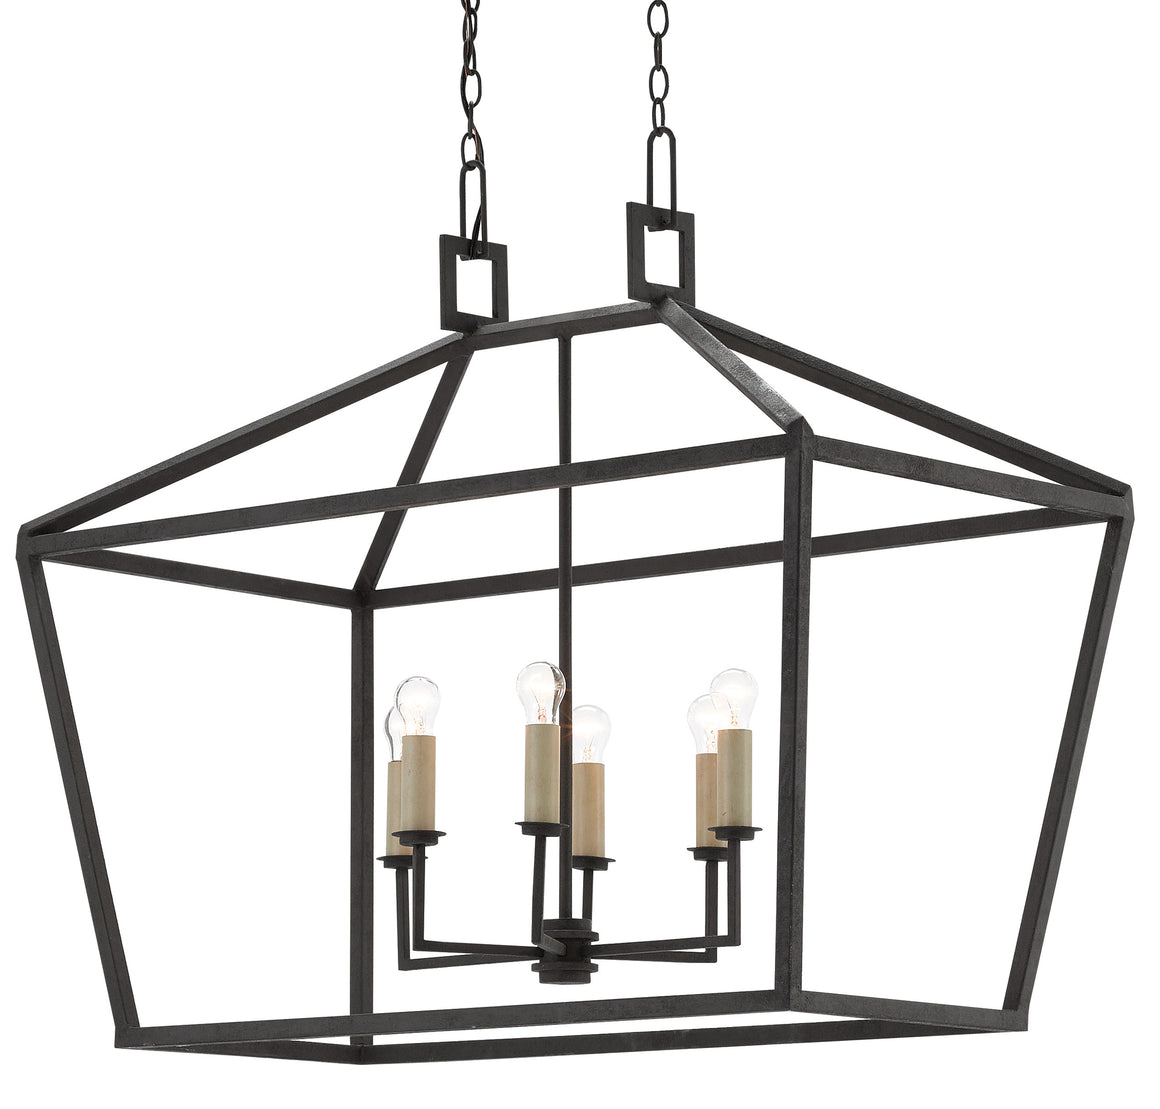 Currey and Company Denison Rectangular Lantern